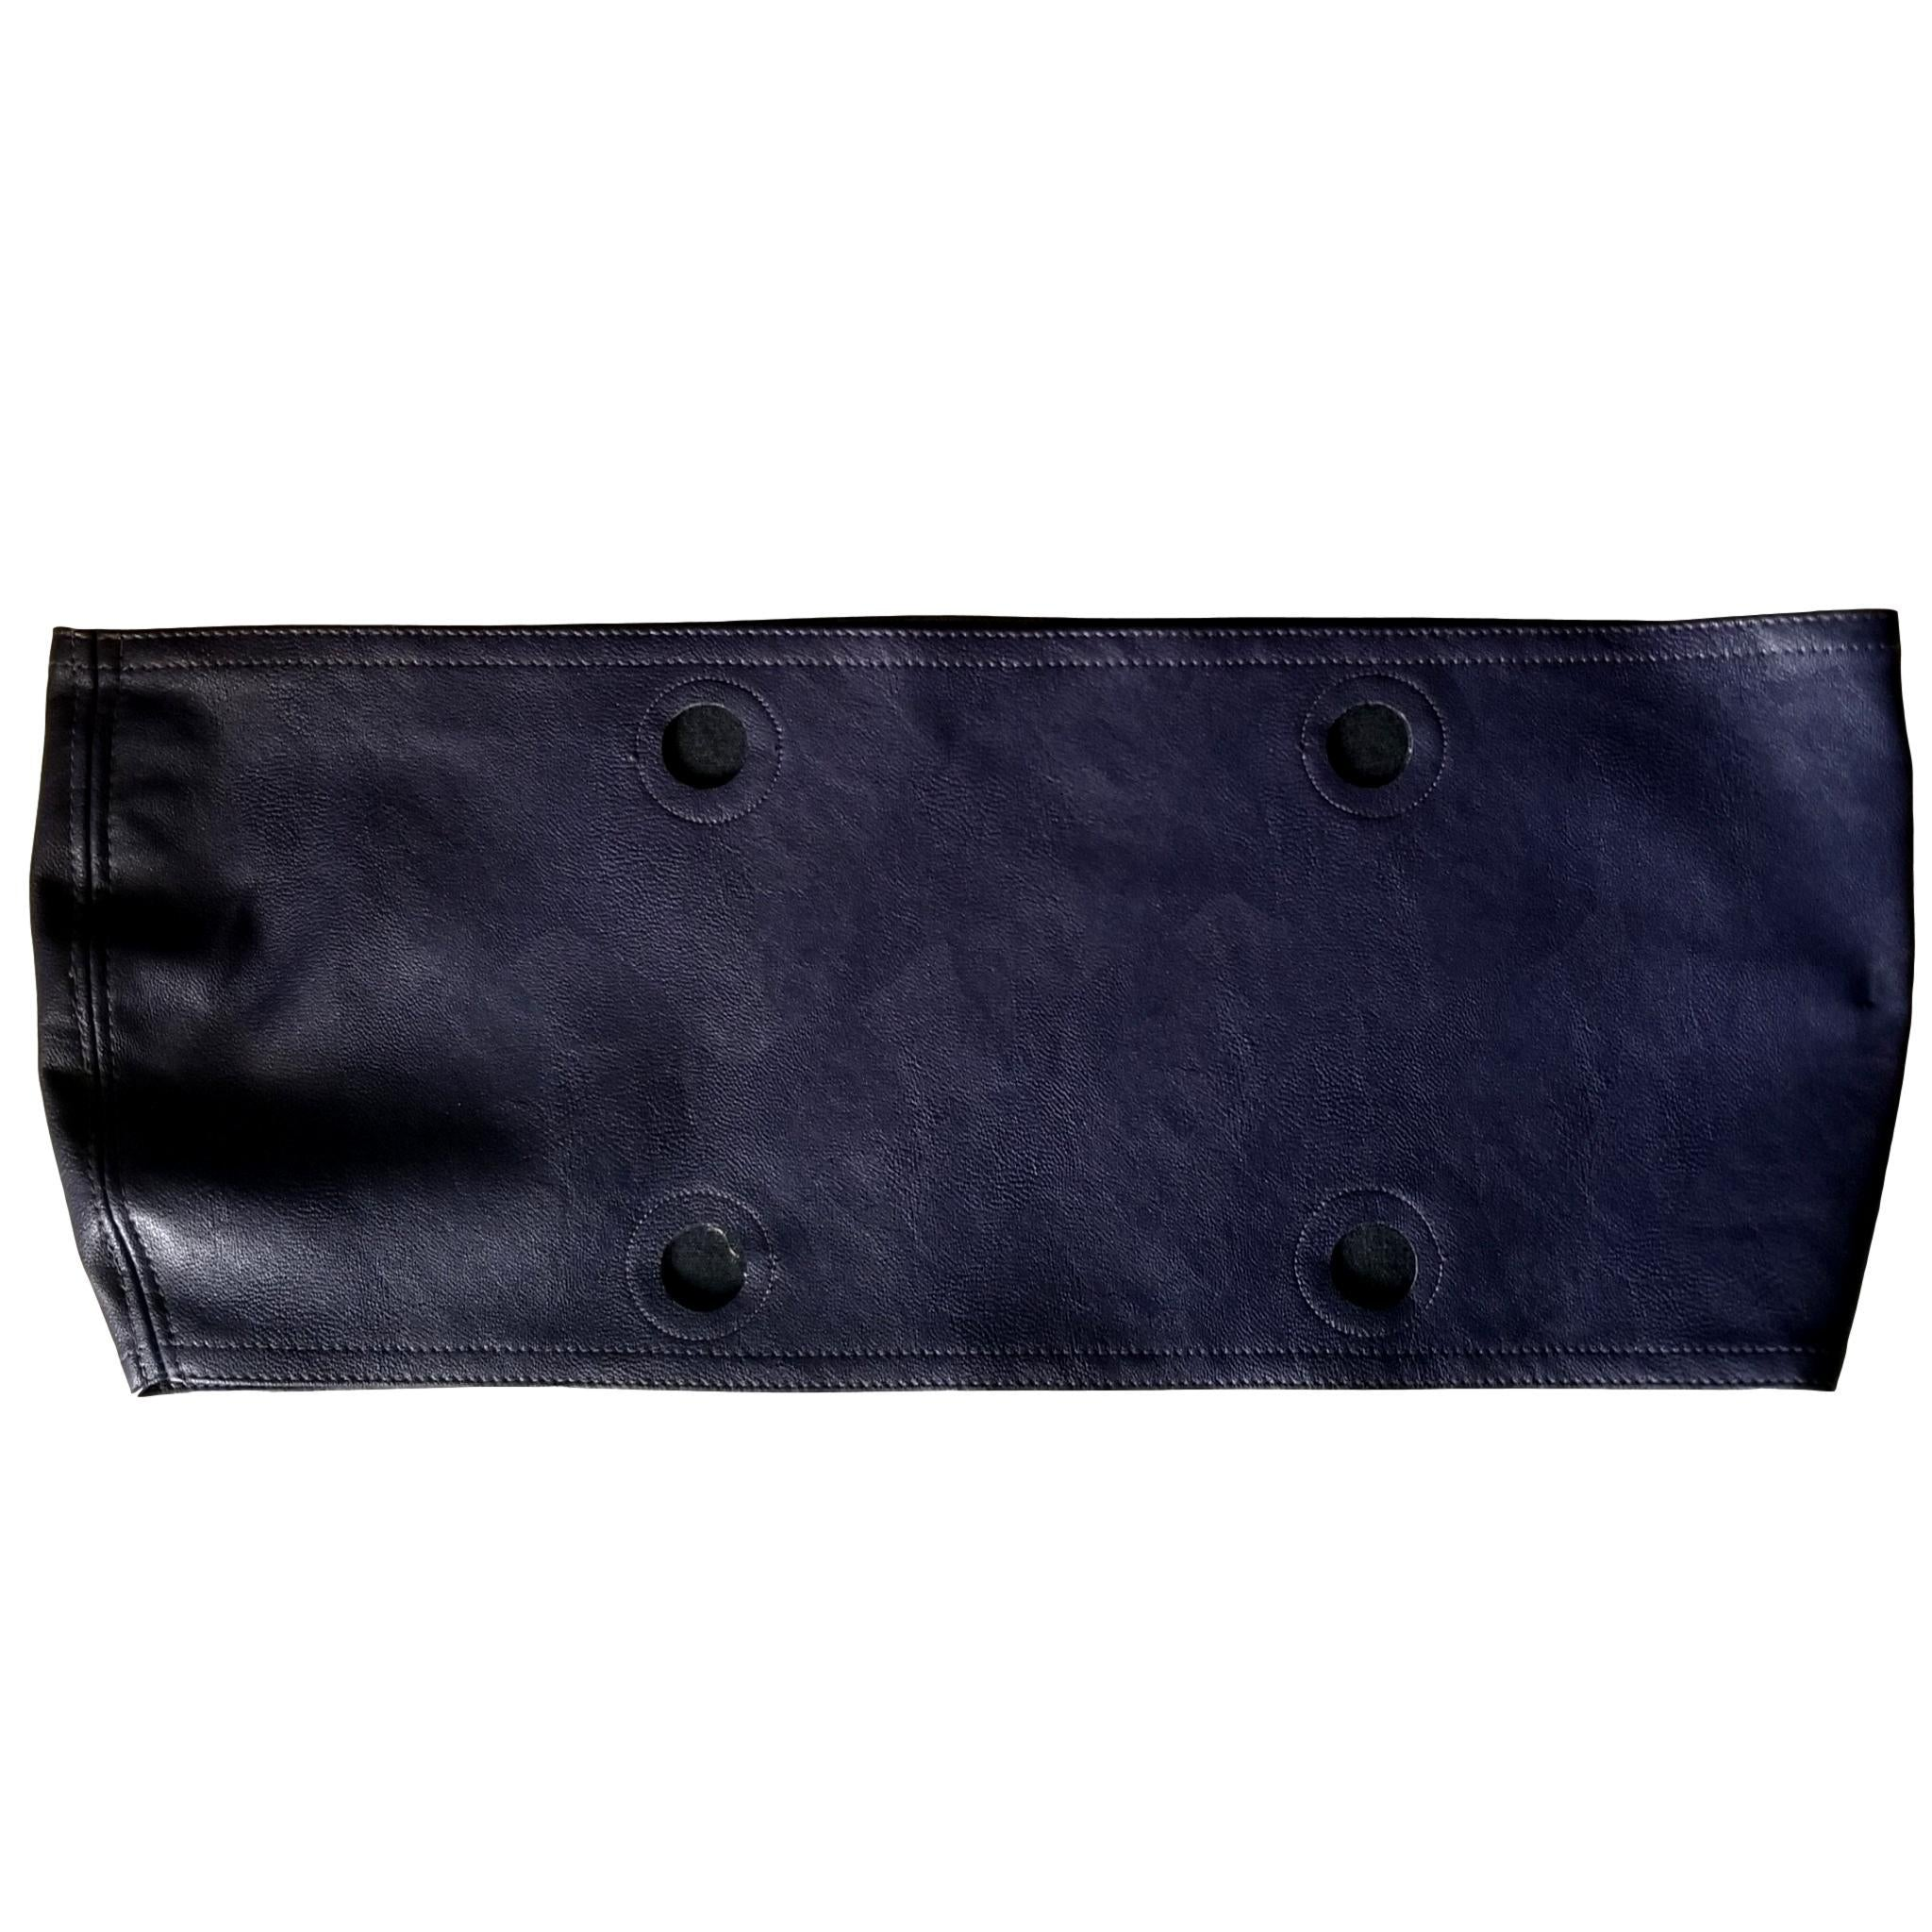 SLO Fashion Handbags. Faux Leather Purple Trim accessory